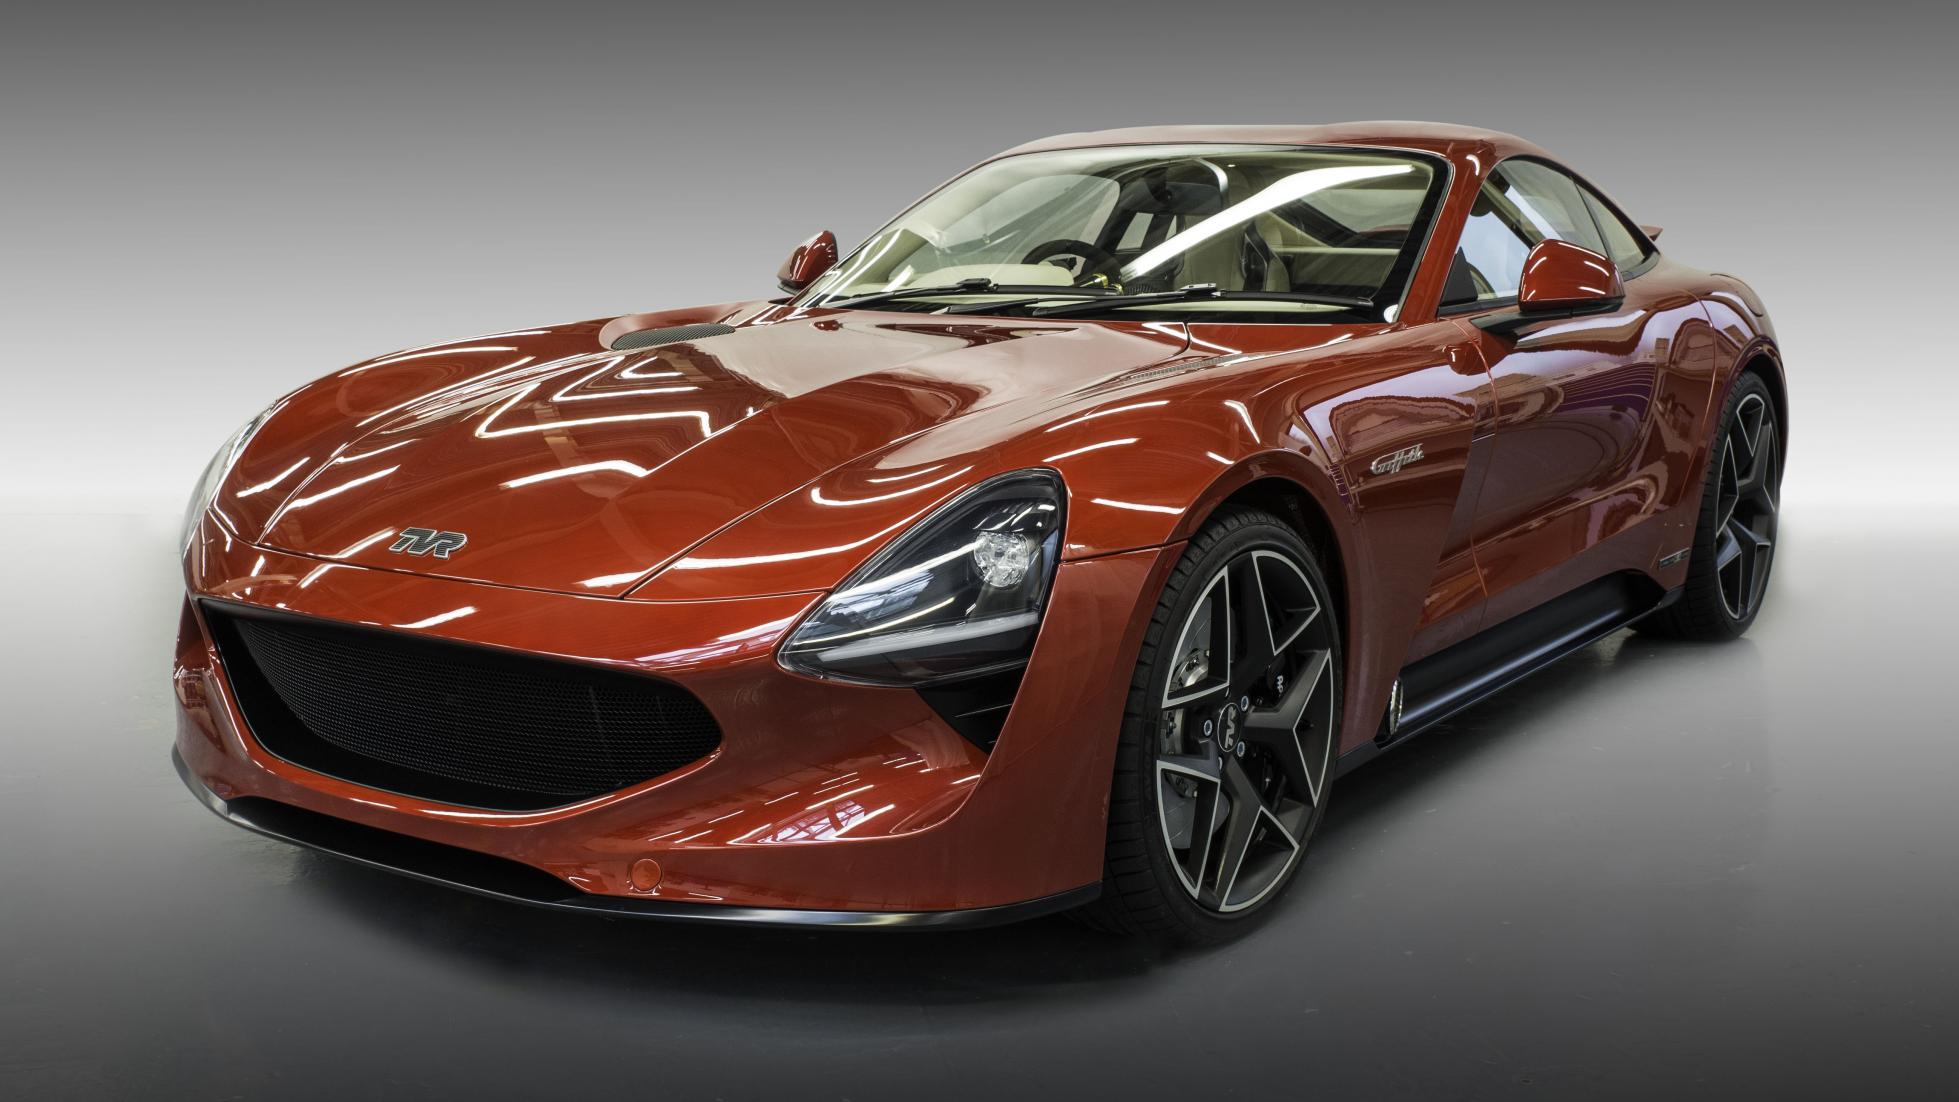 2018 tvr griffith test drive makes ceo laugh and swear with enjoyment autoevolution. Black Bedroom Furniture Sets. Home Design Ideas